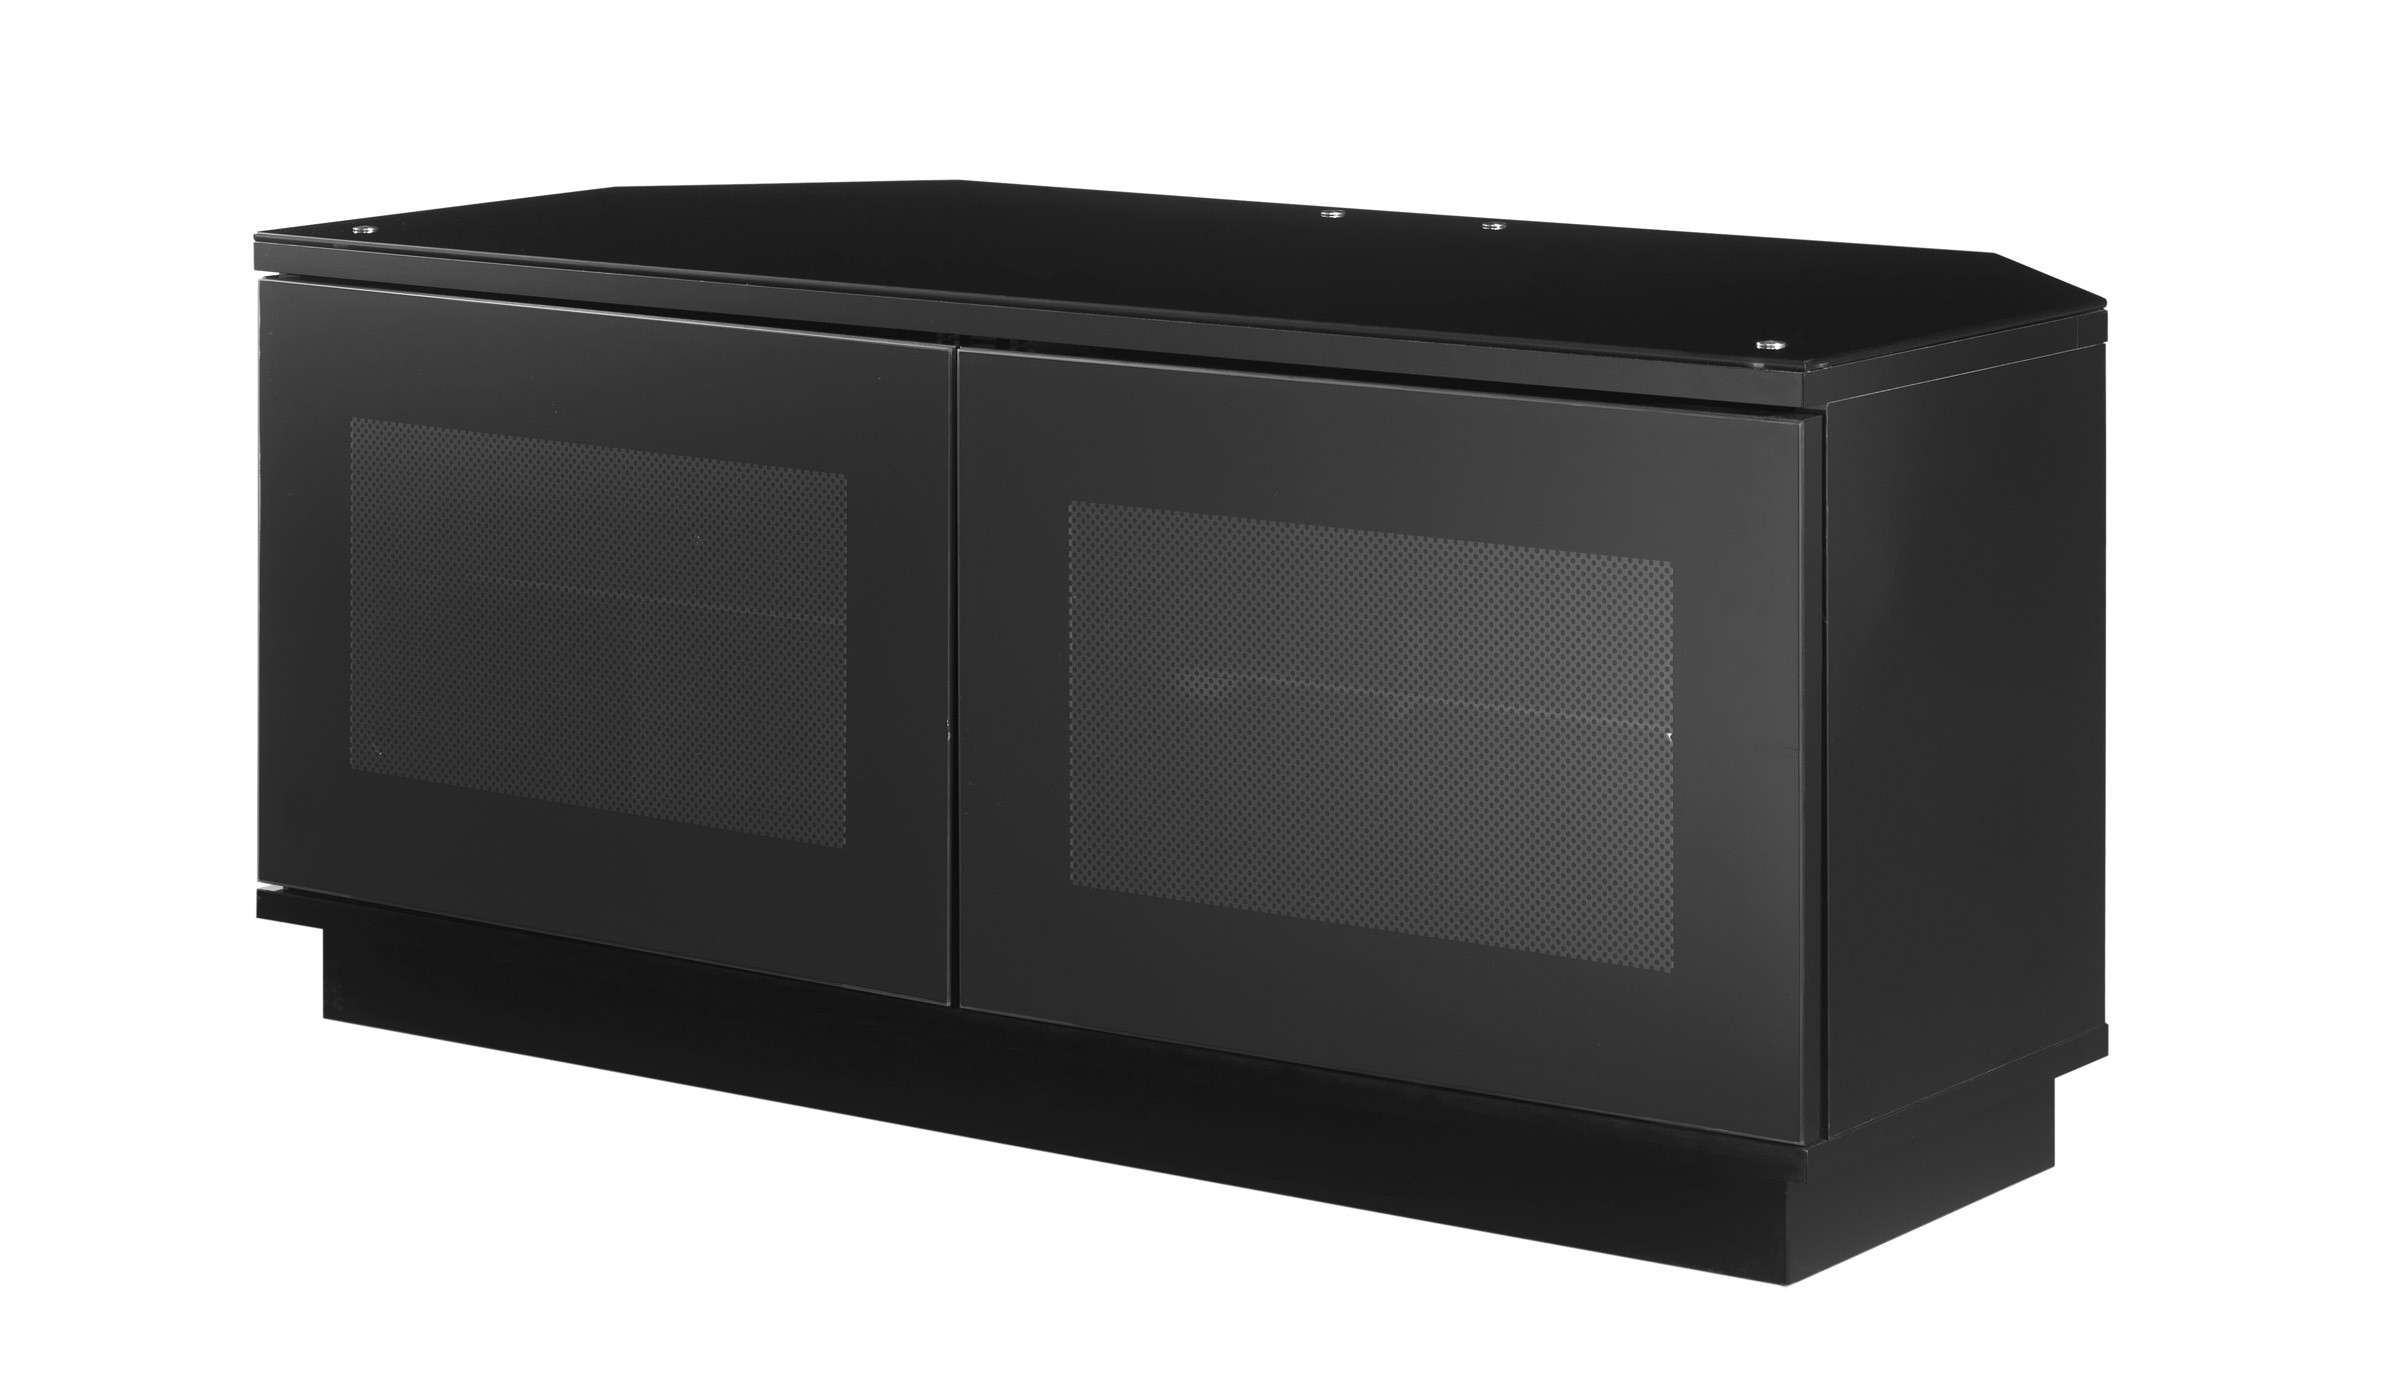 Small Black Tv Stand Cabinet With Door For Corner – Decofurnish For Small Black Tv Cabinets (View 13 of 20)